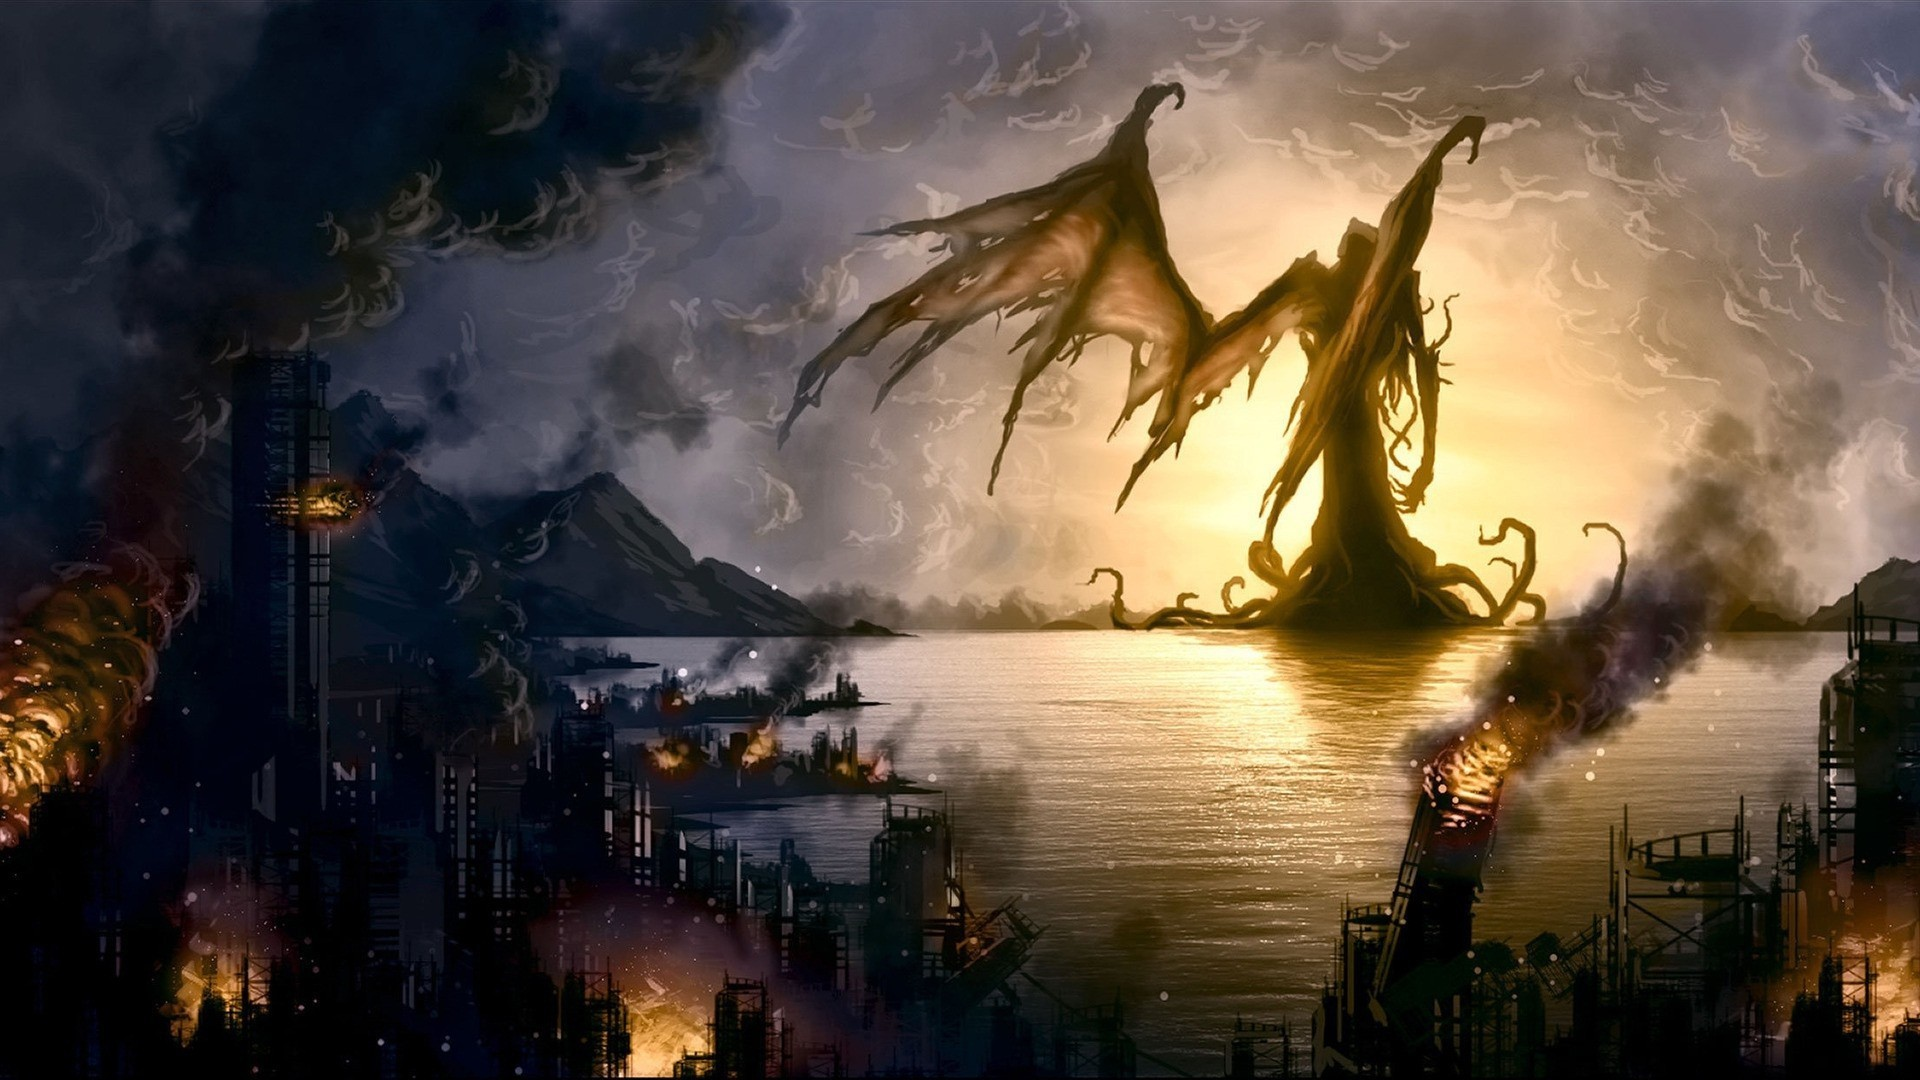 The angel of death has destroyed the coastal city wallpapers and .